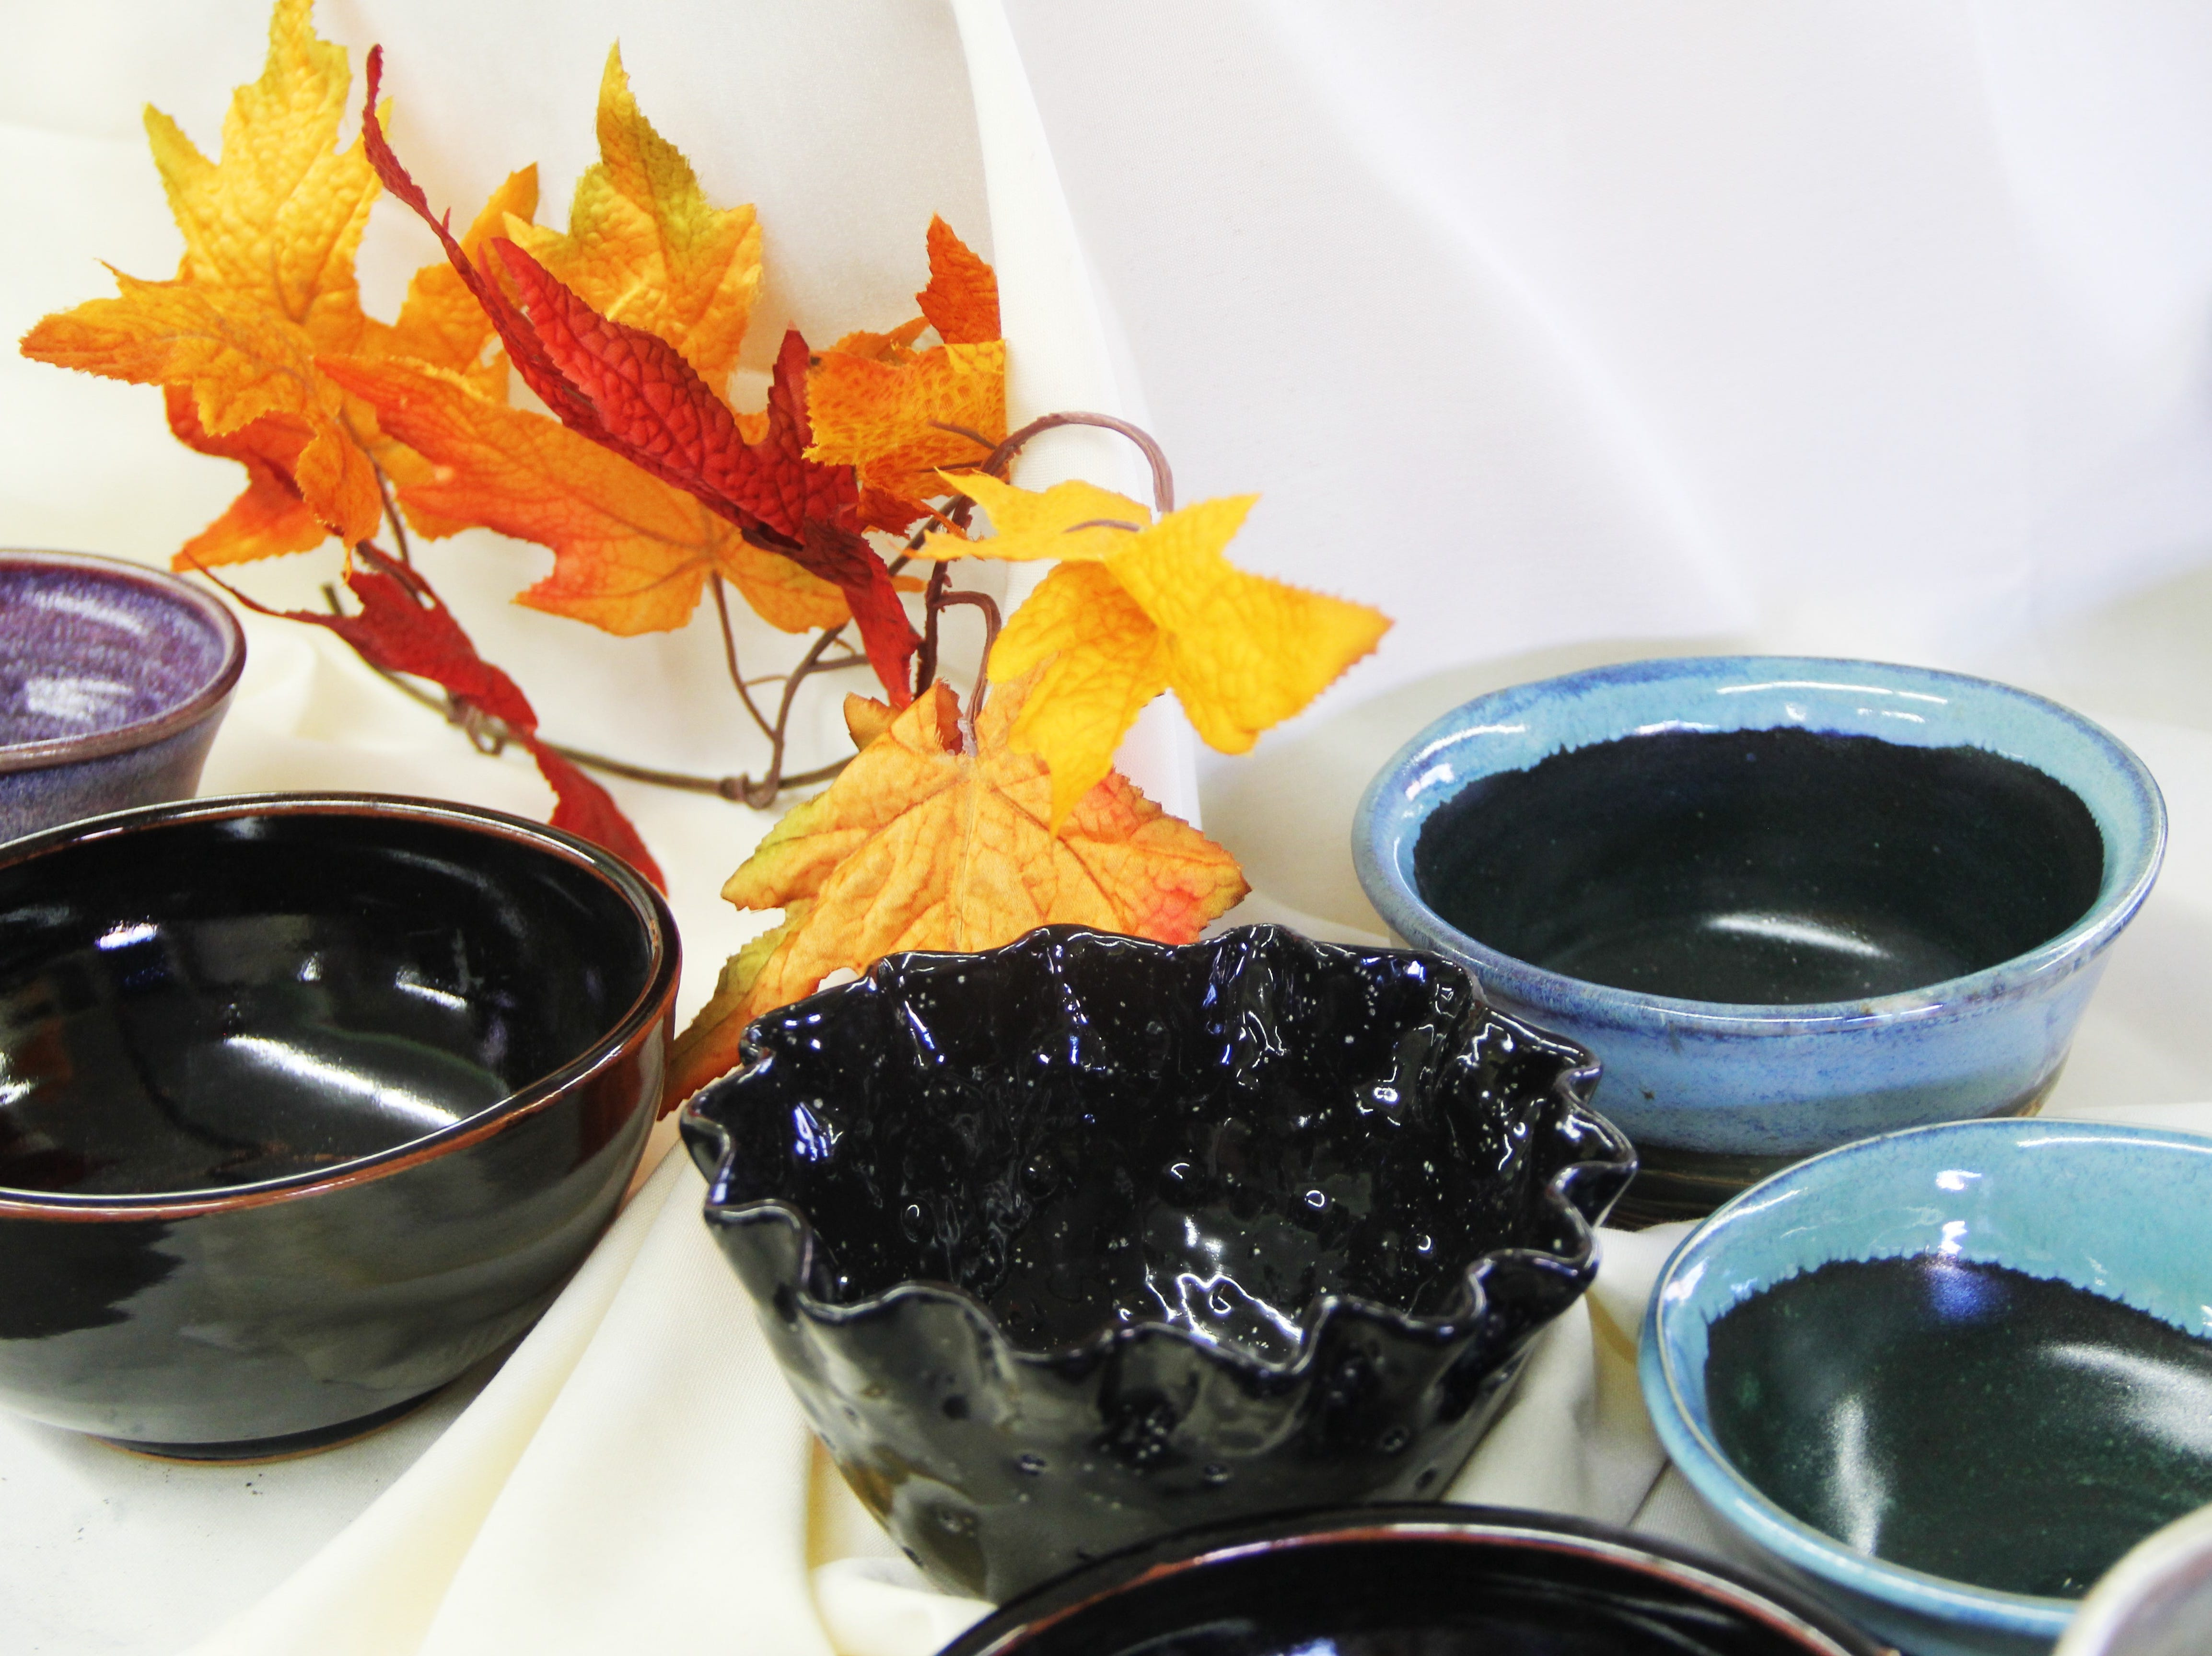 Bowls available at the Willamette Art Center's Empty Bowls fundraiser on Saturday, Nov. 17. Bowls are thrown and glazed by volunteers throughout the year.